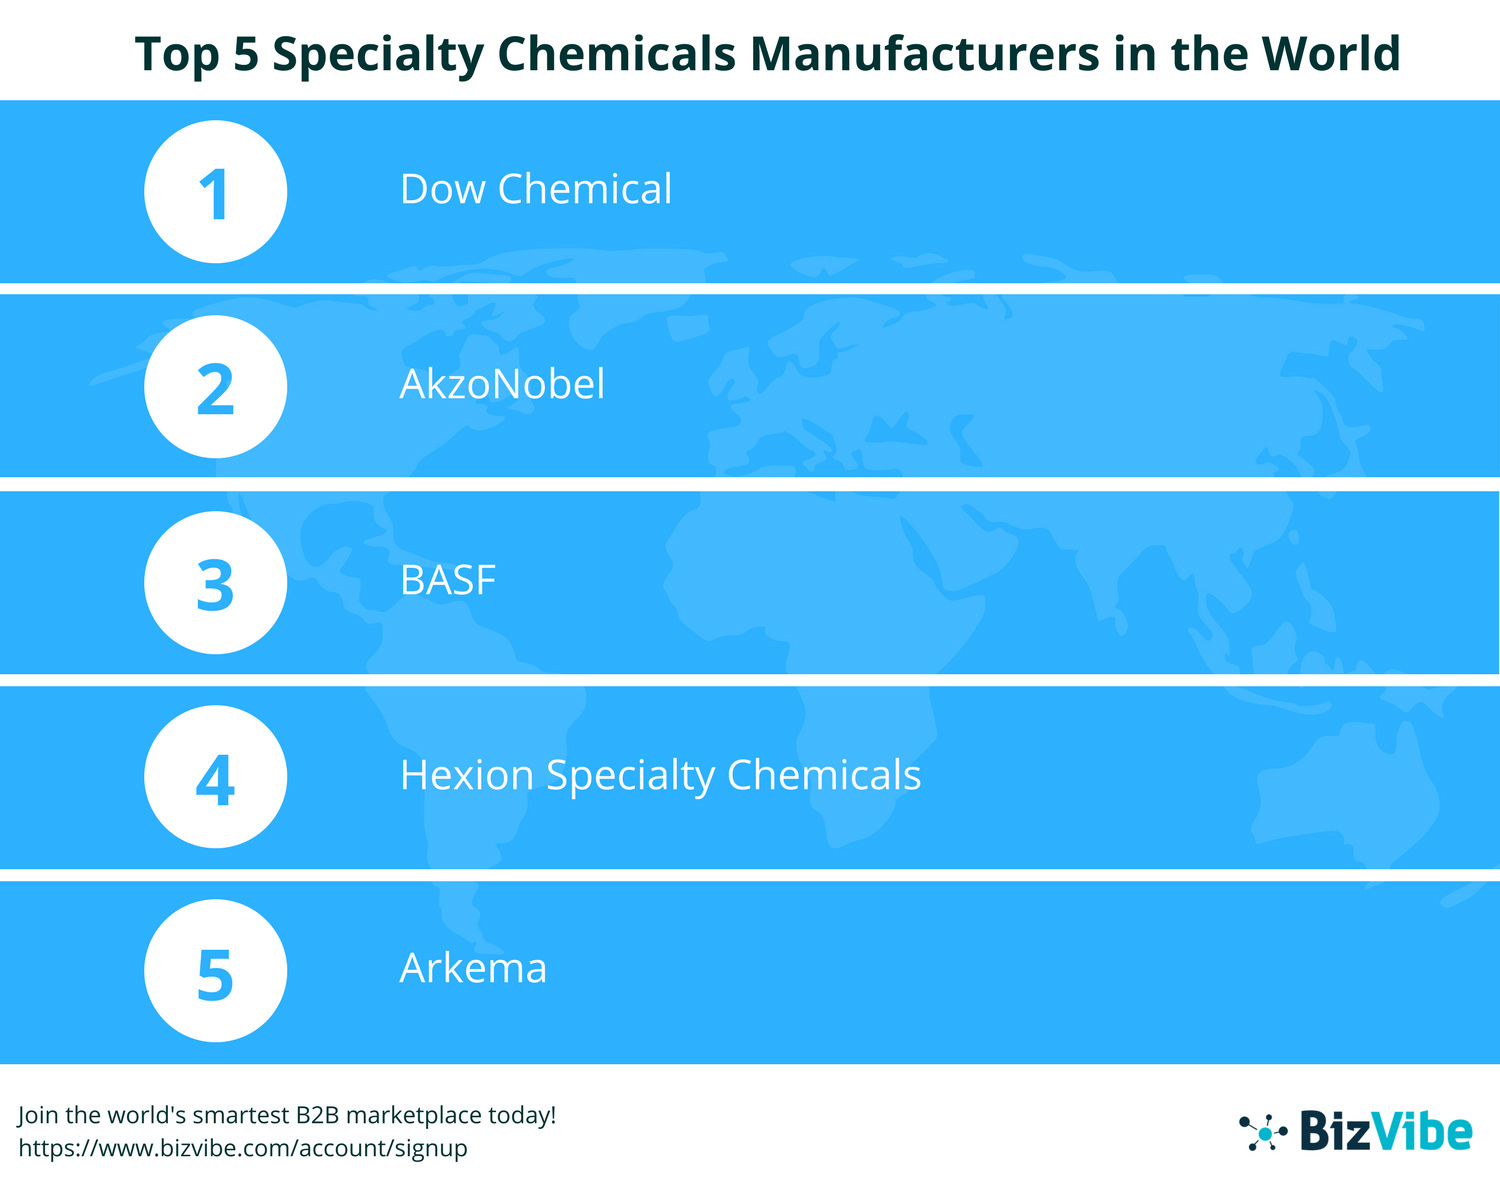 BizVibe Announces Their List of the World's Top 5 Specialty